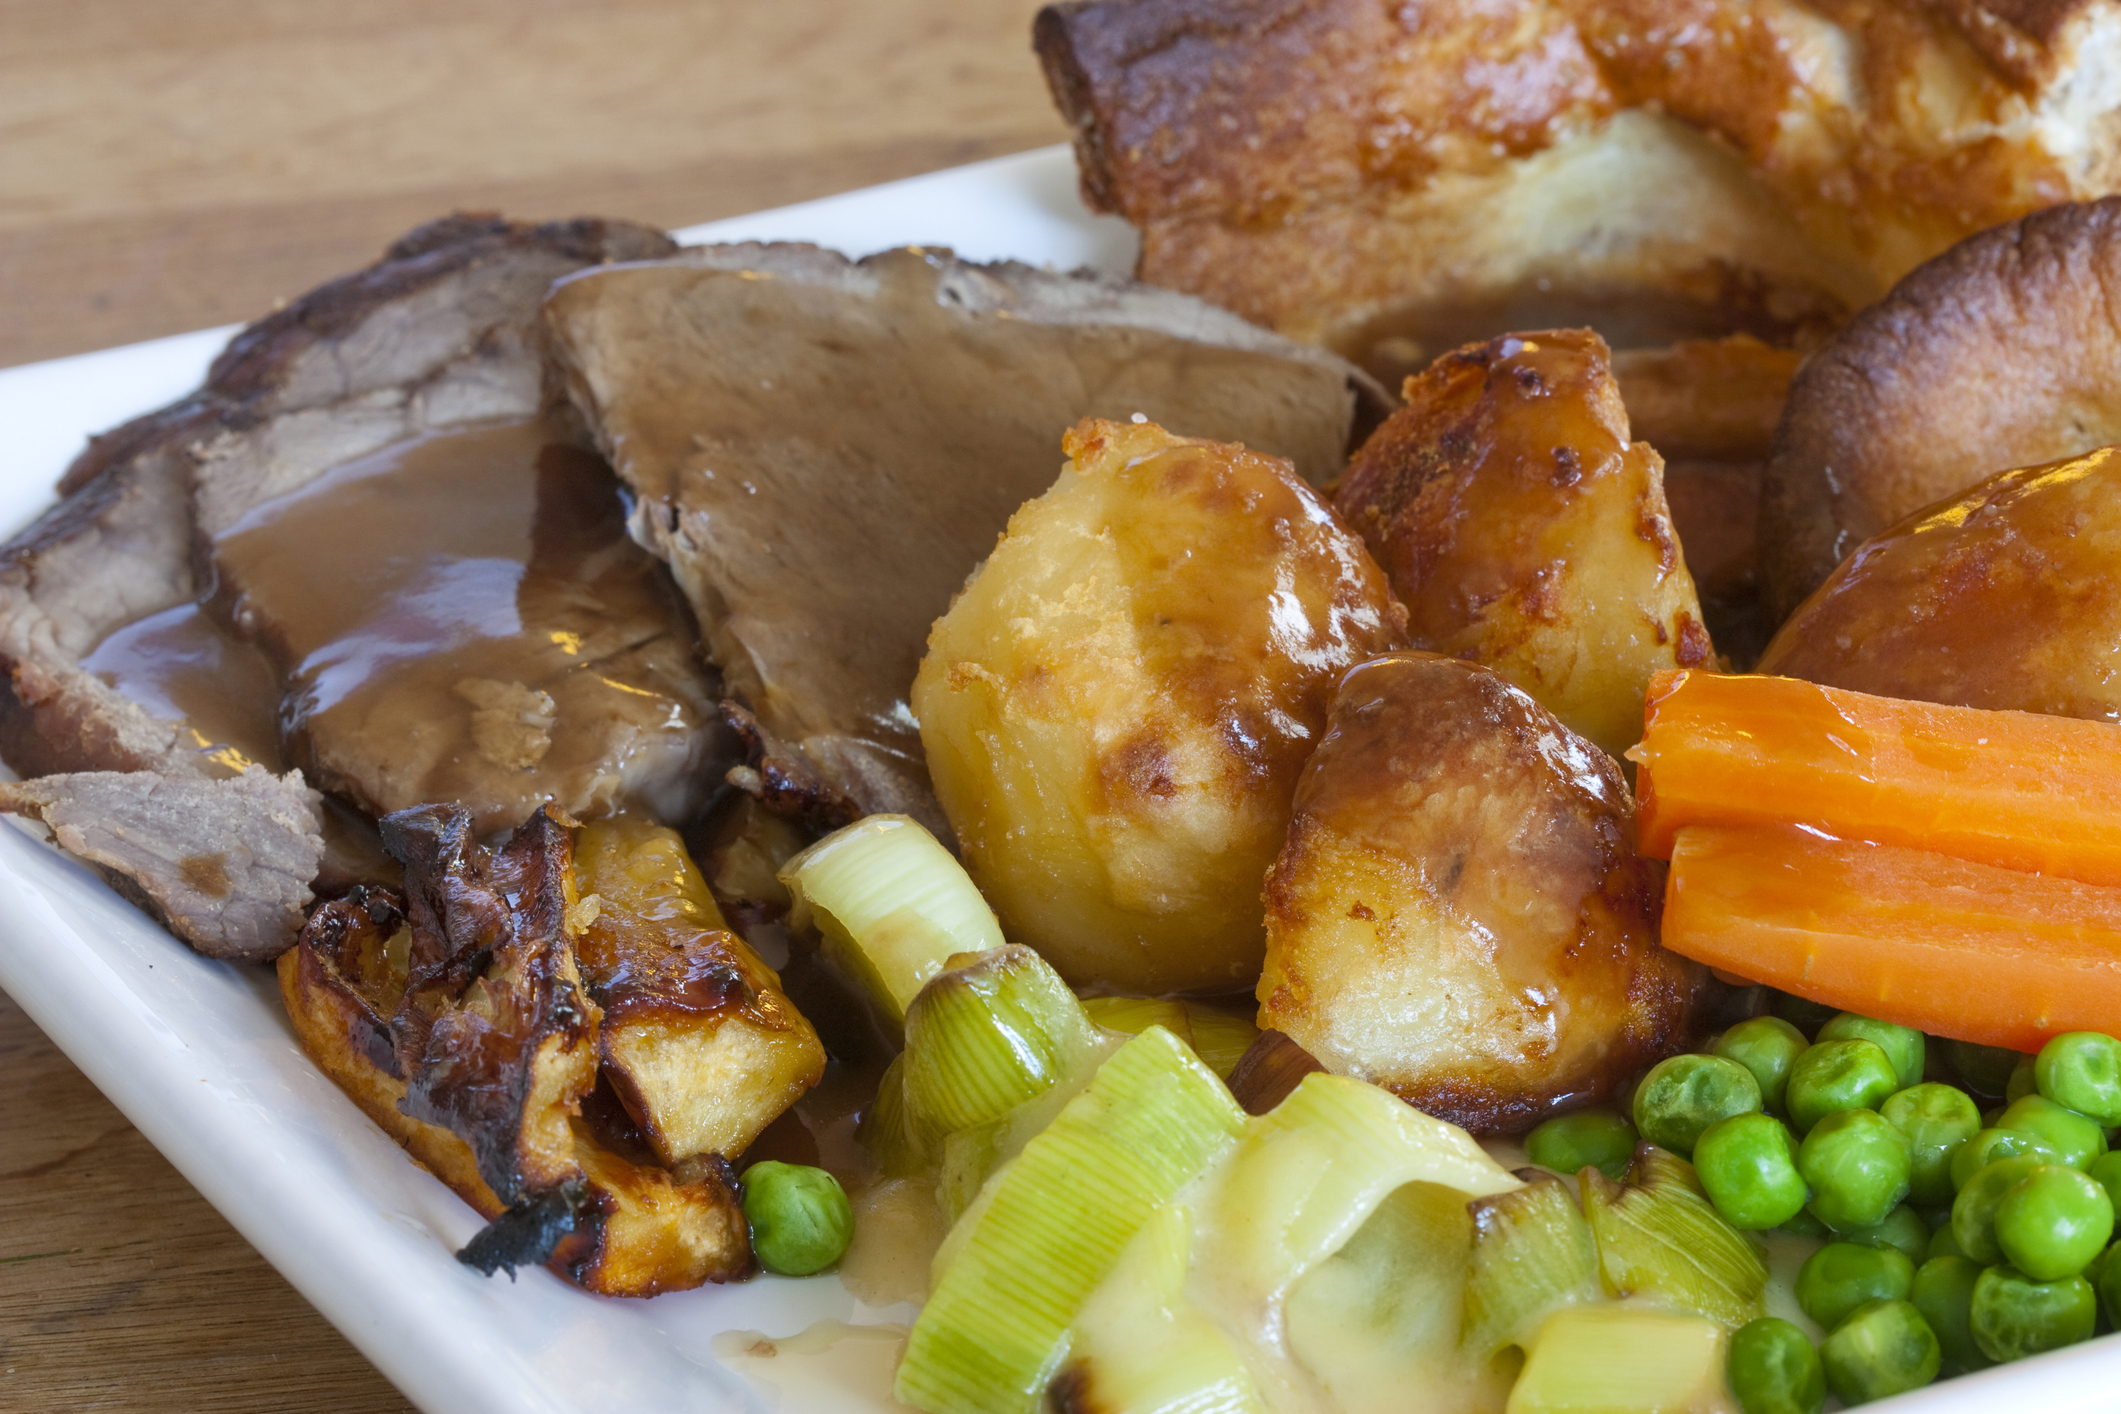 or why not try our deliciousSunday Roast? -